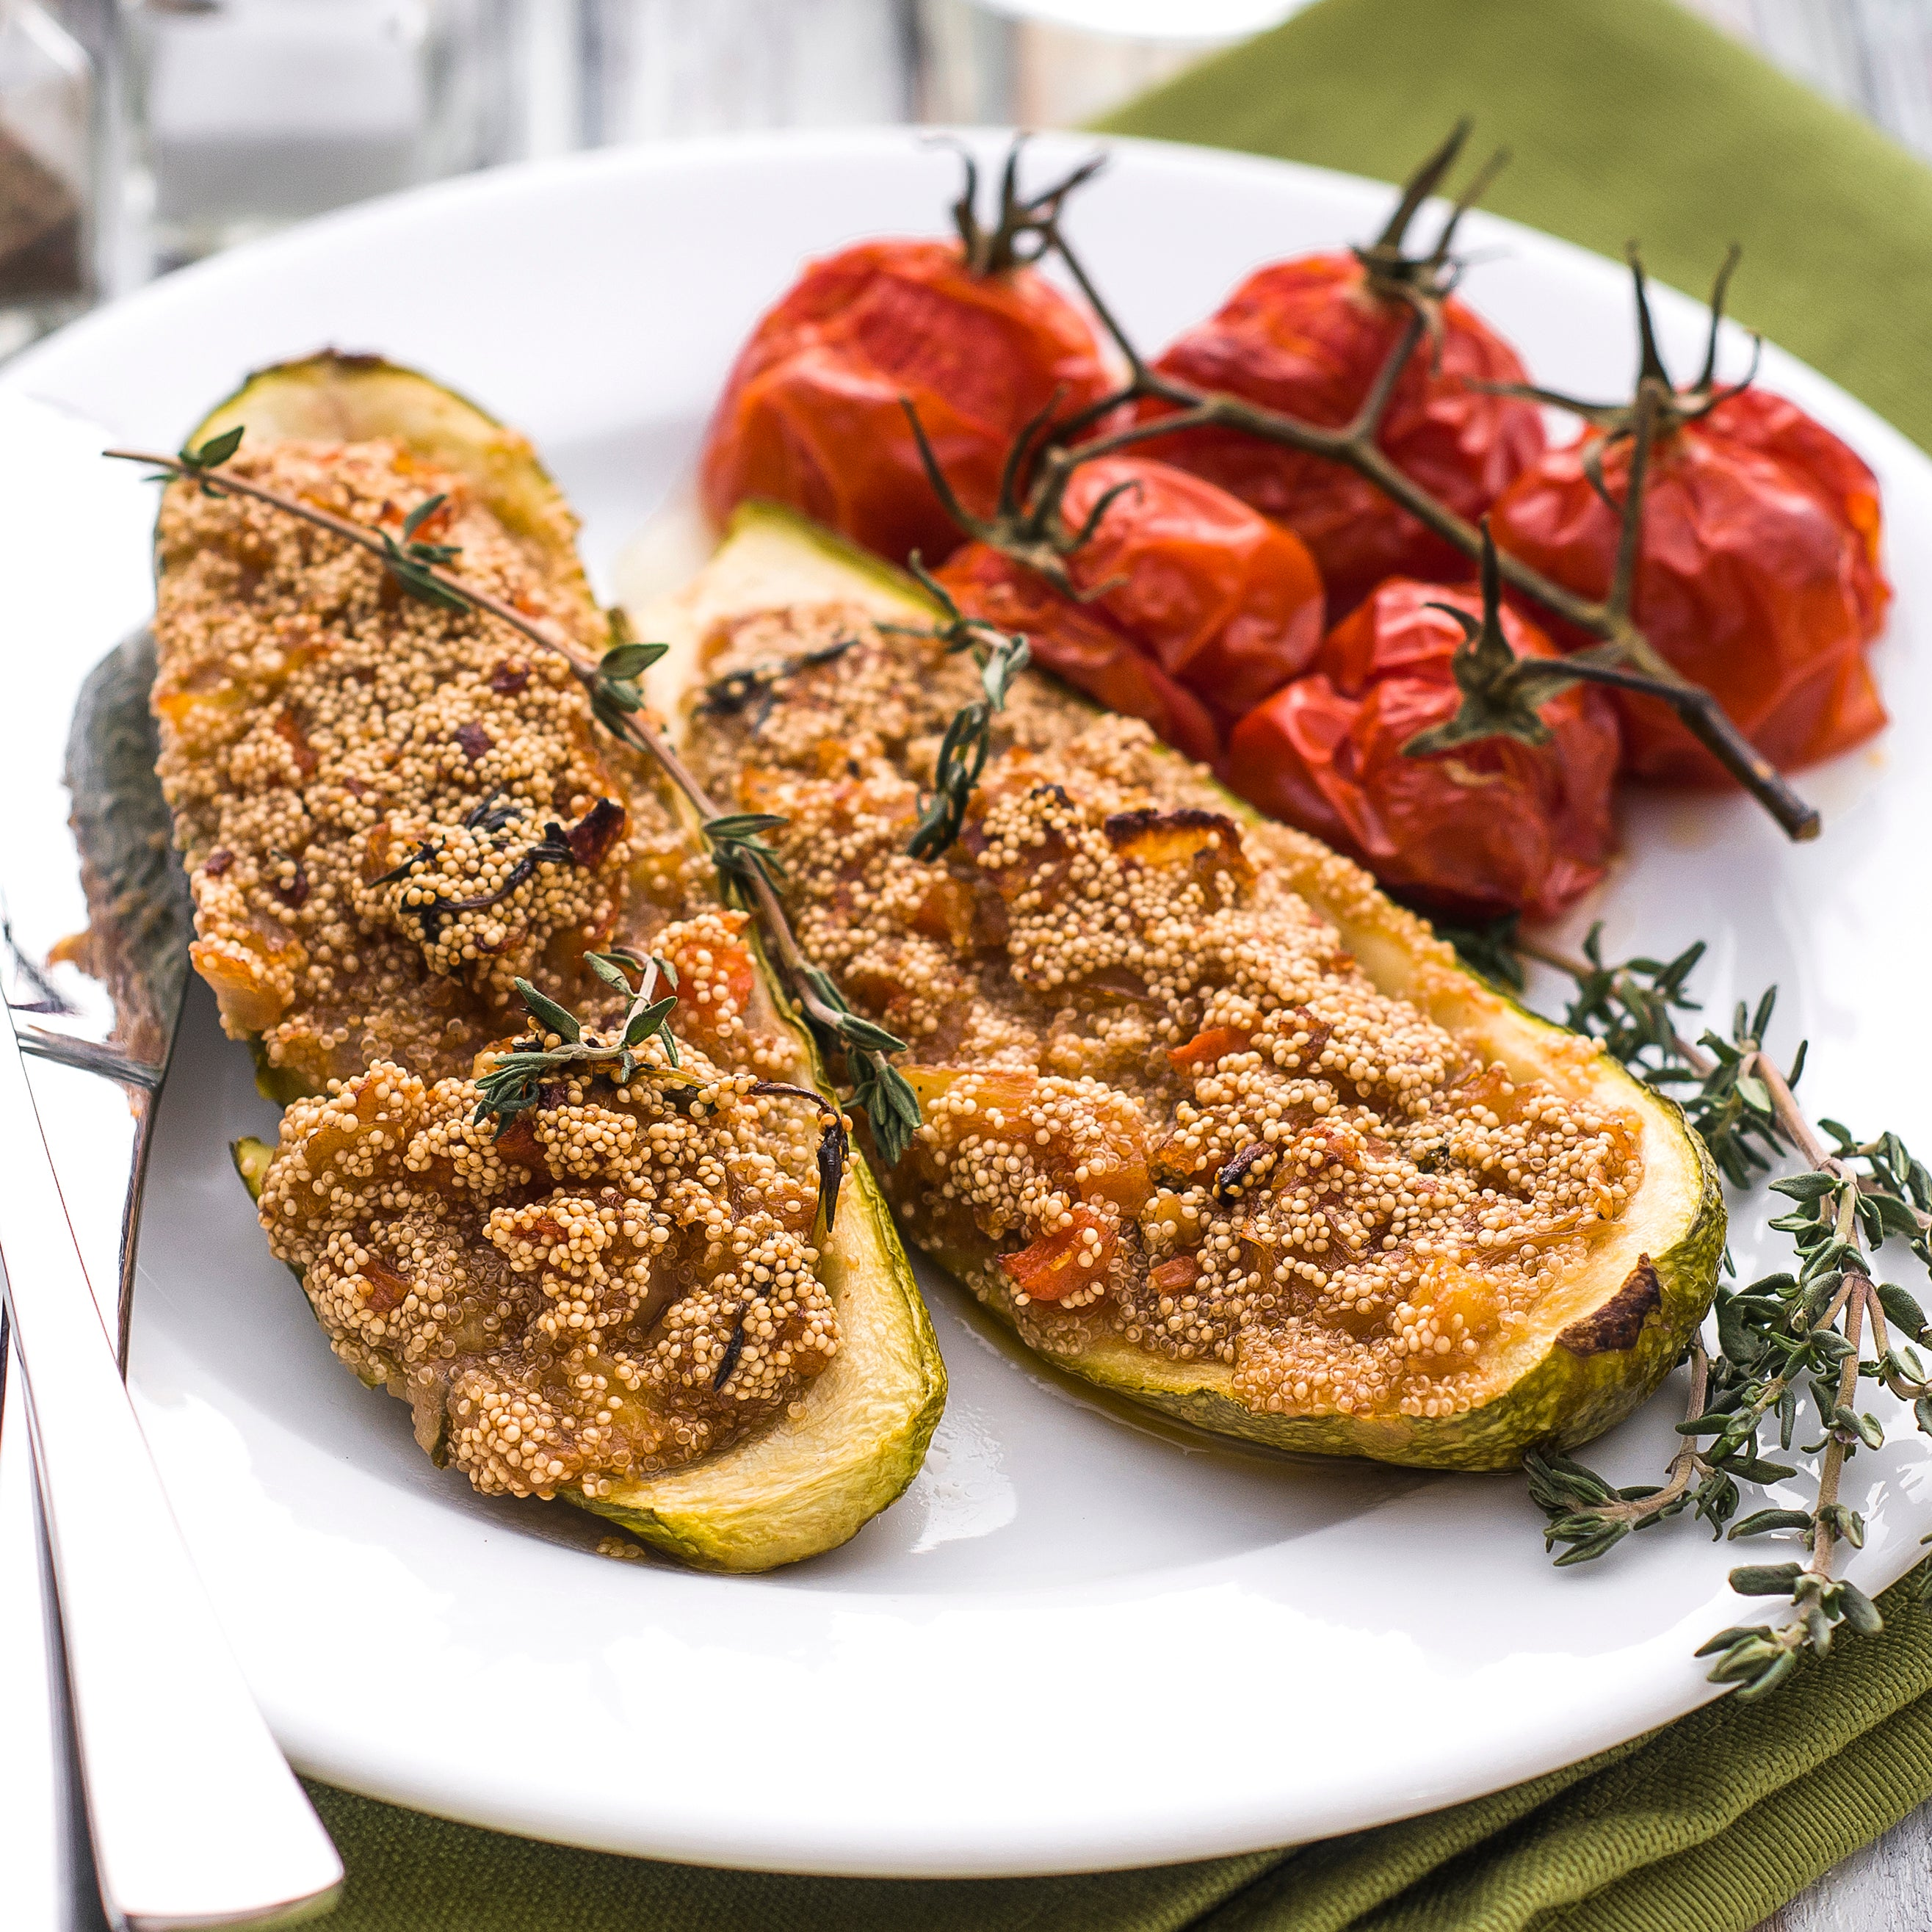 Stuffed Zucchini with Amaranth and Veggies